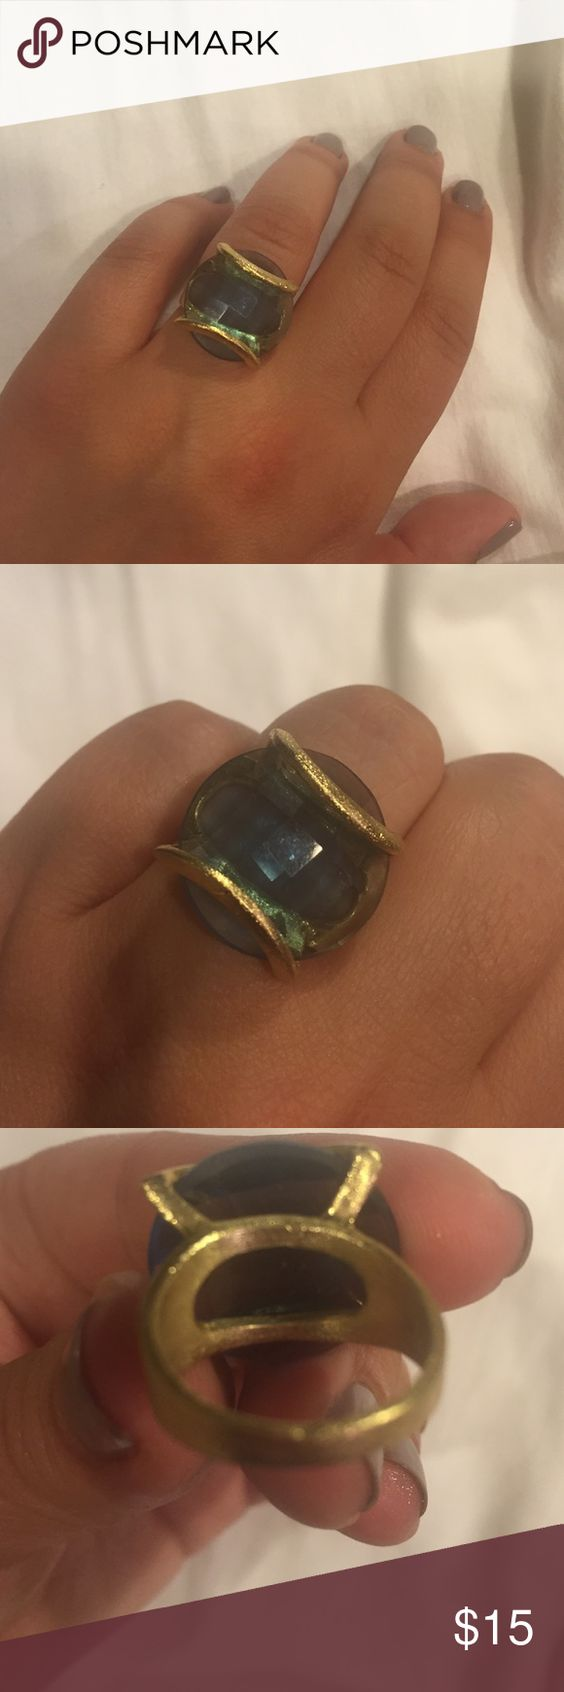 Gold brushed ring Gold brushed ring with blue stone Jewelry Rings